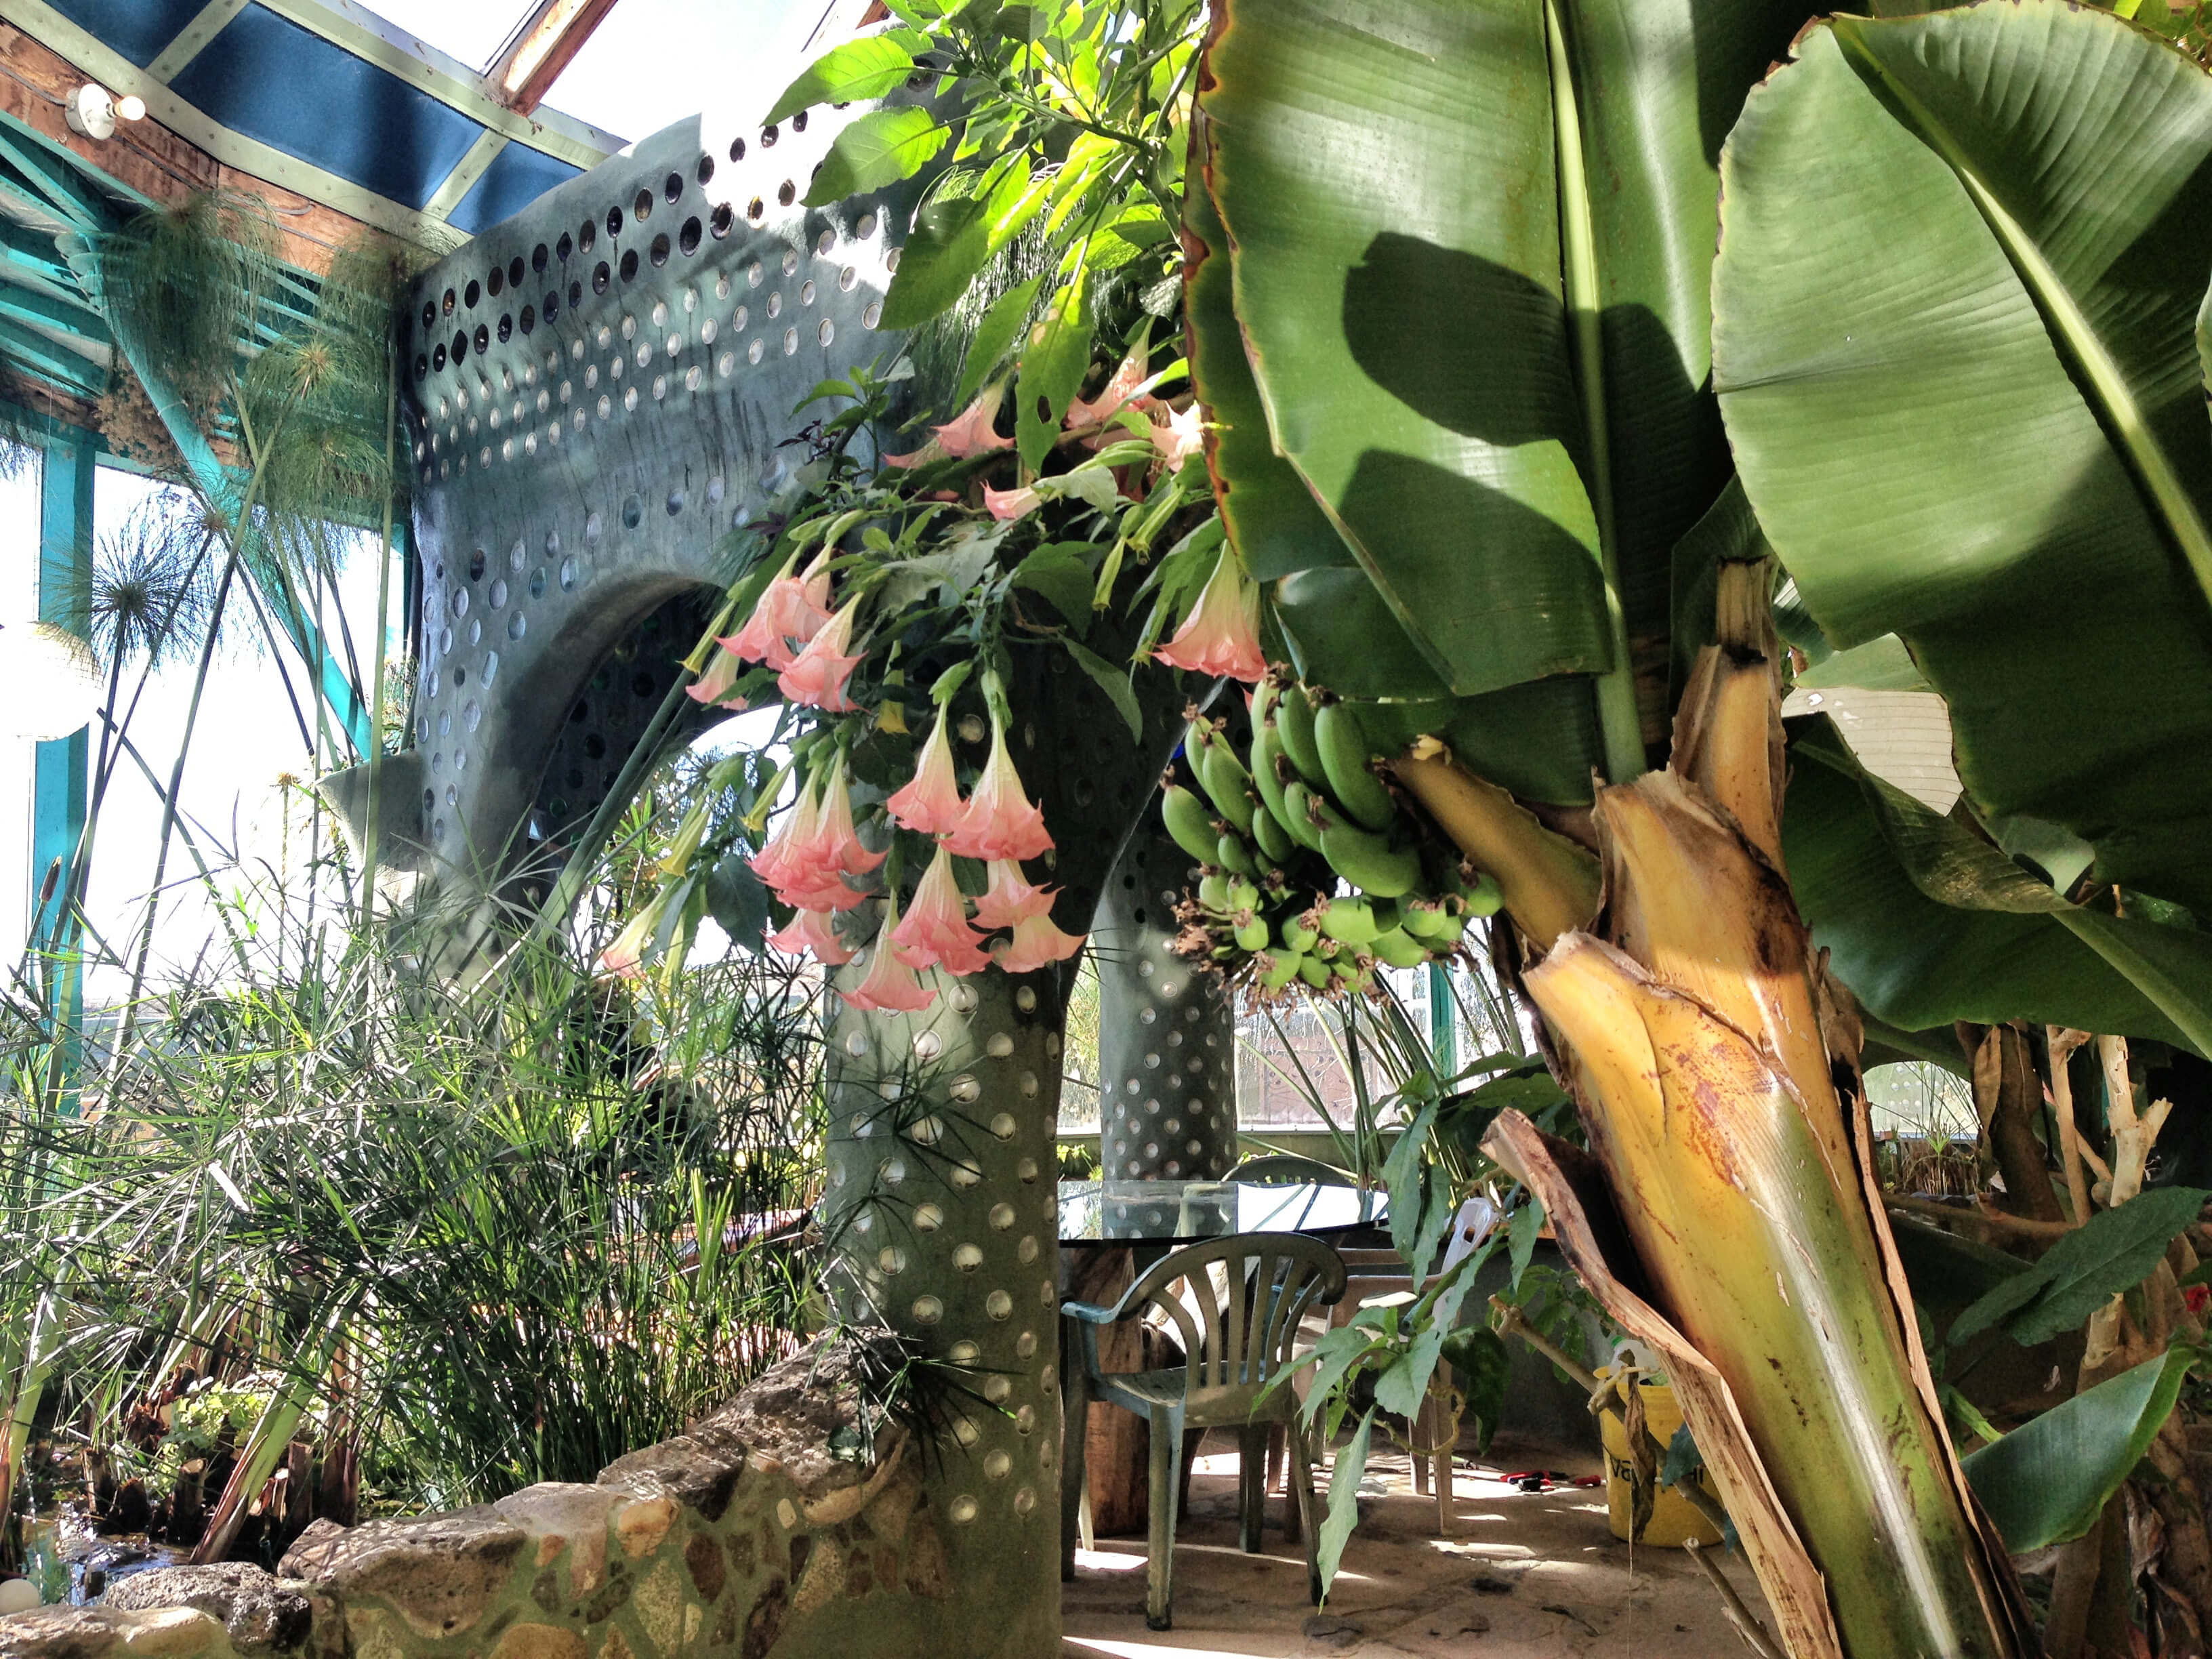 Flowers and bananas grow in the greenhouse of the Phoenix earthship.